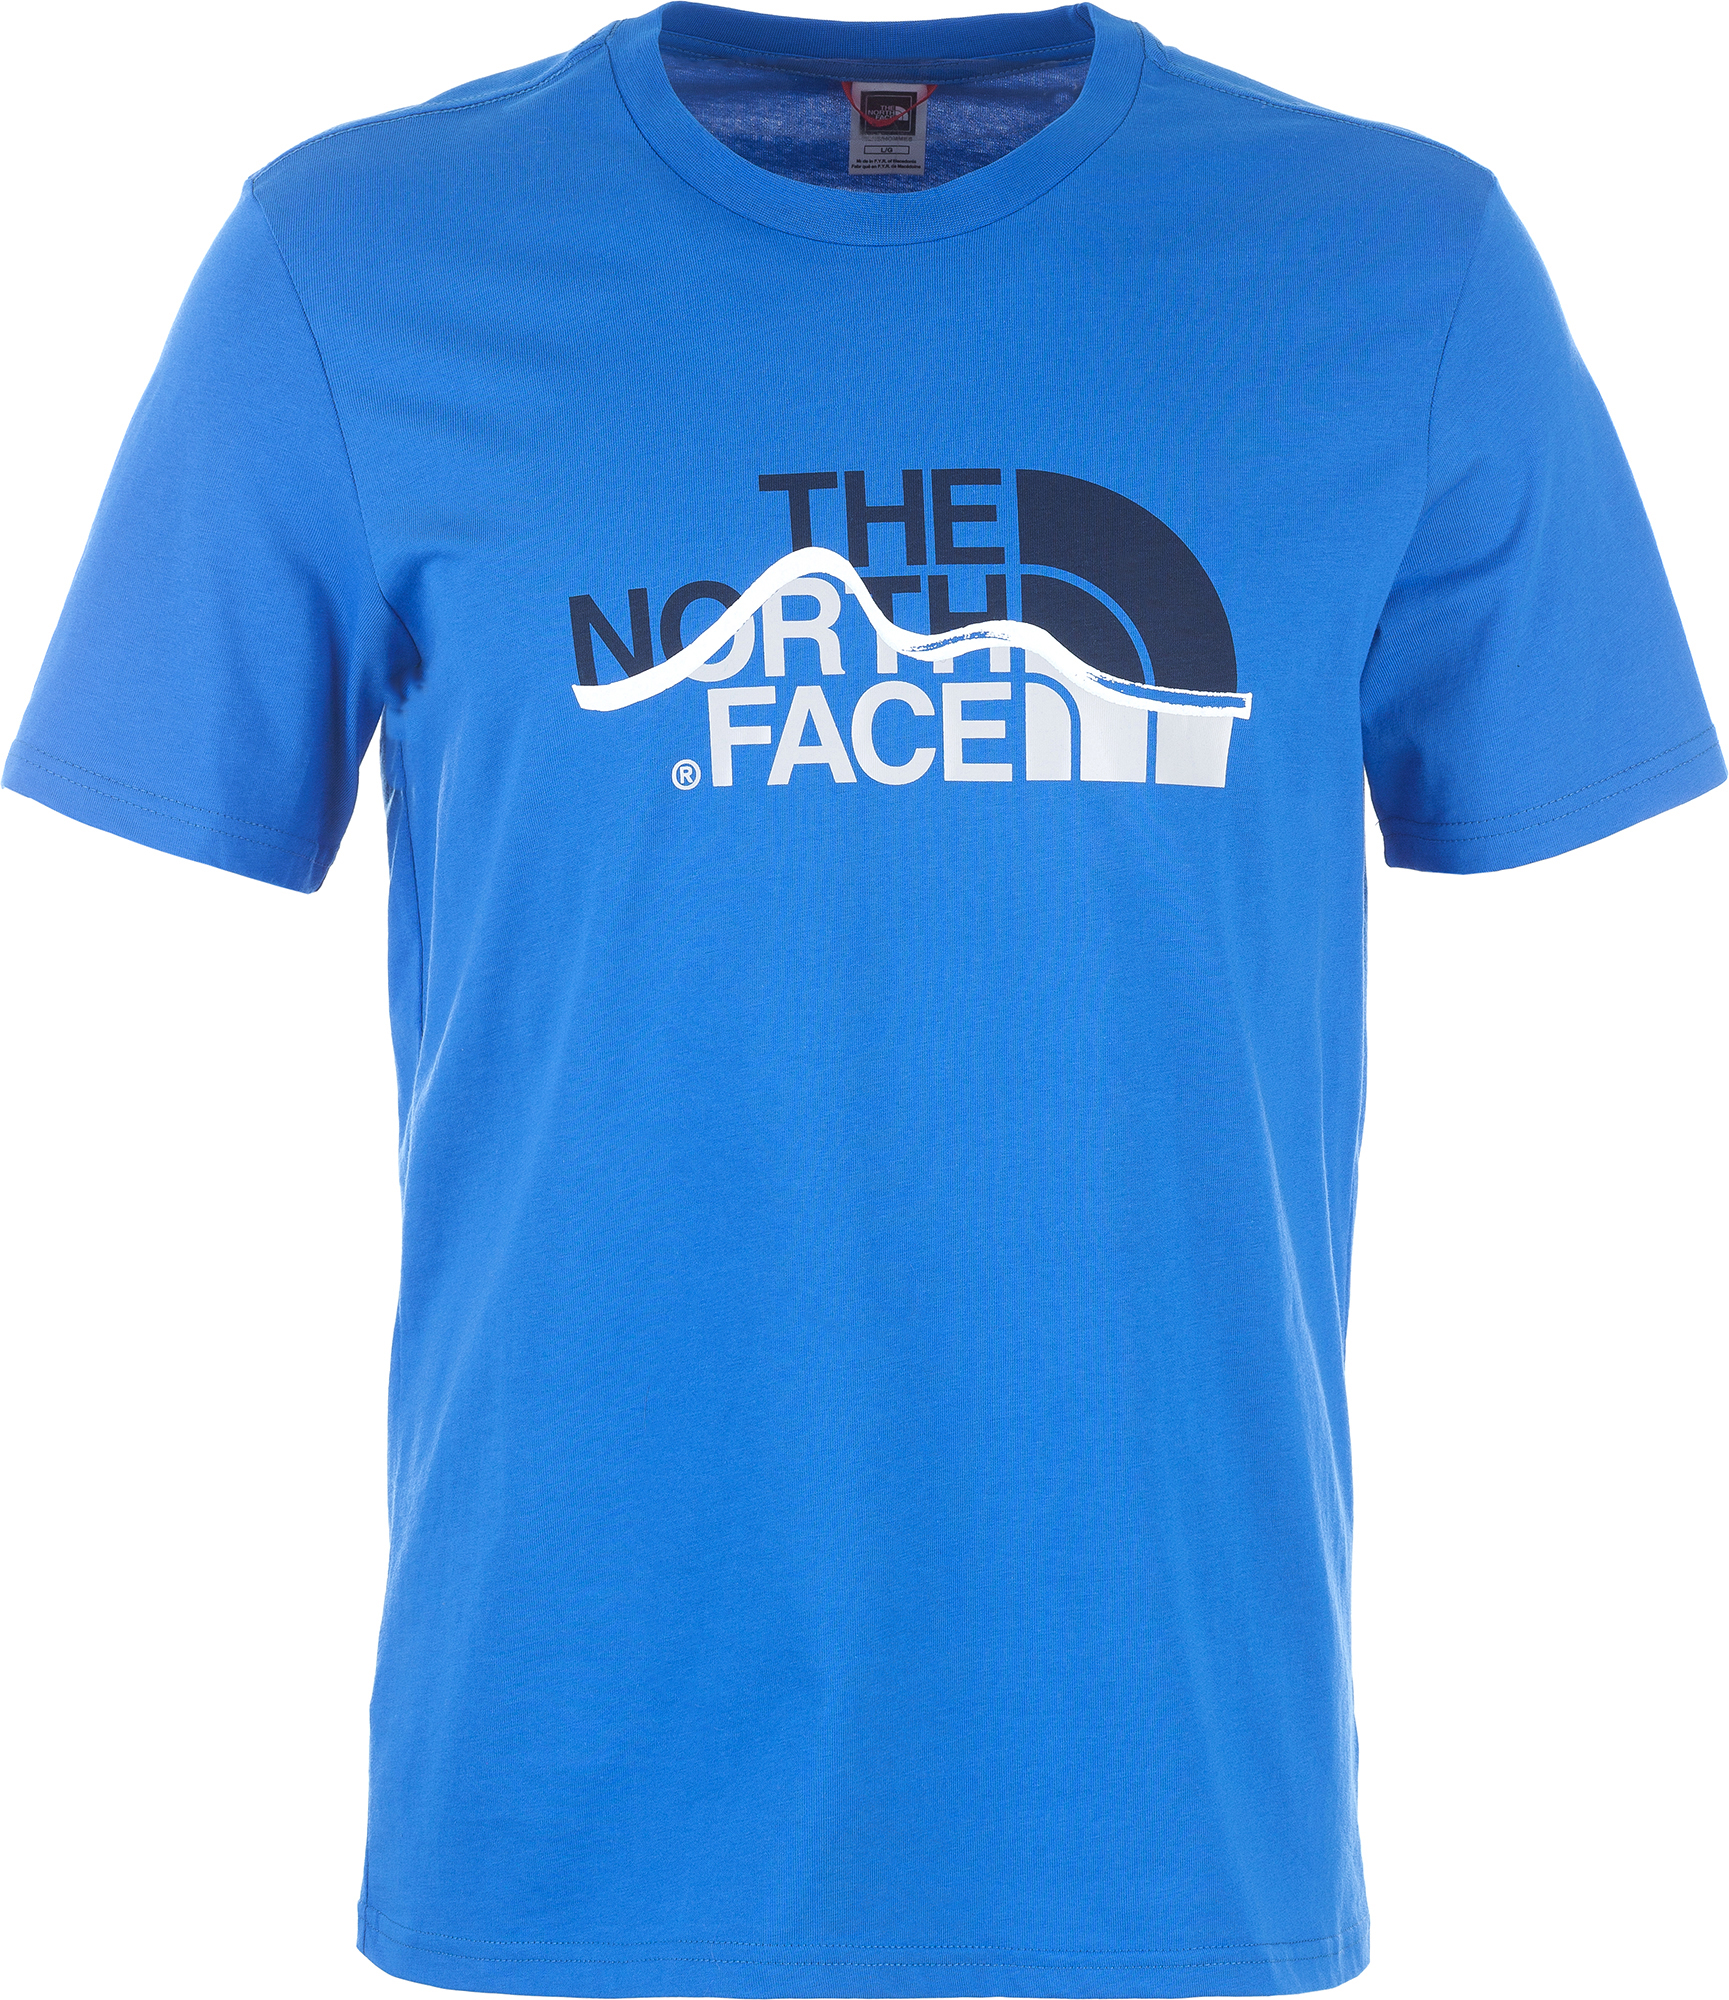 The North Face Футболка мужская The North Face Mountain Line футболка quelle john devin 288247